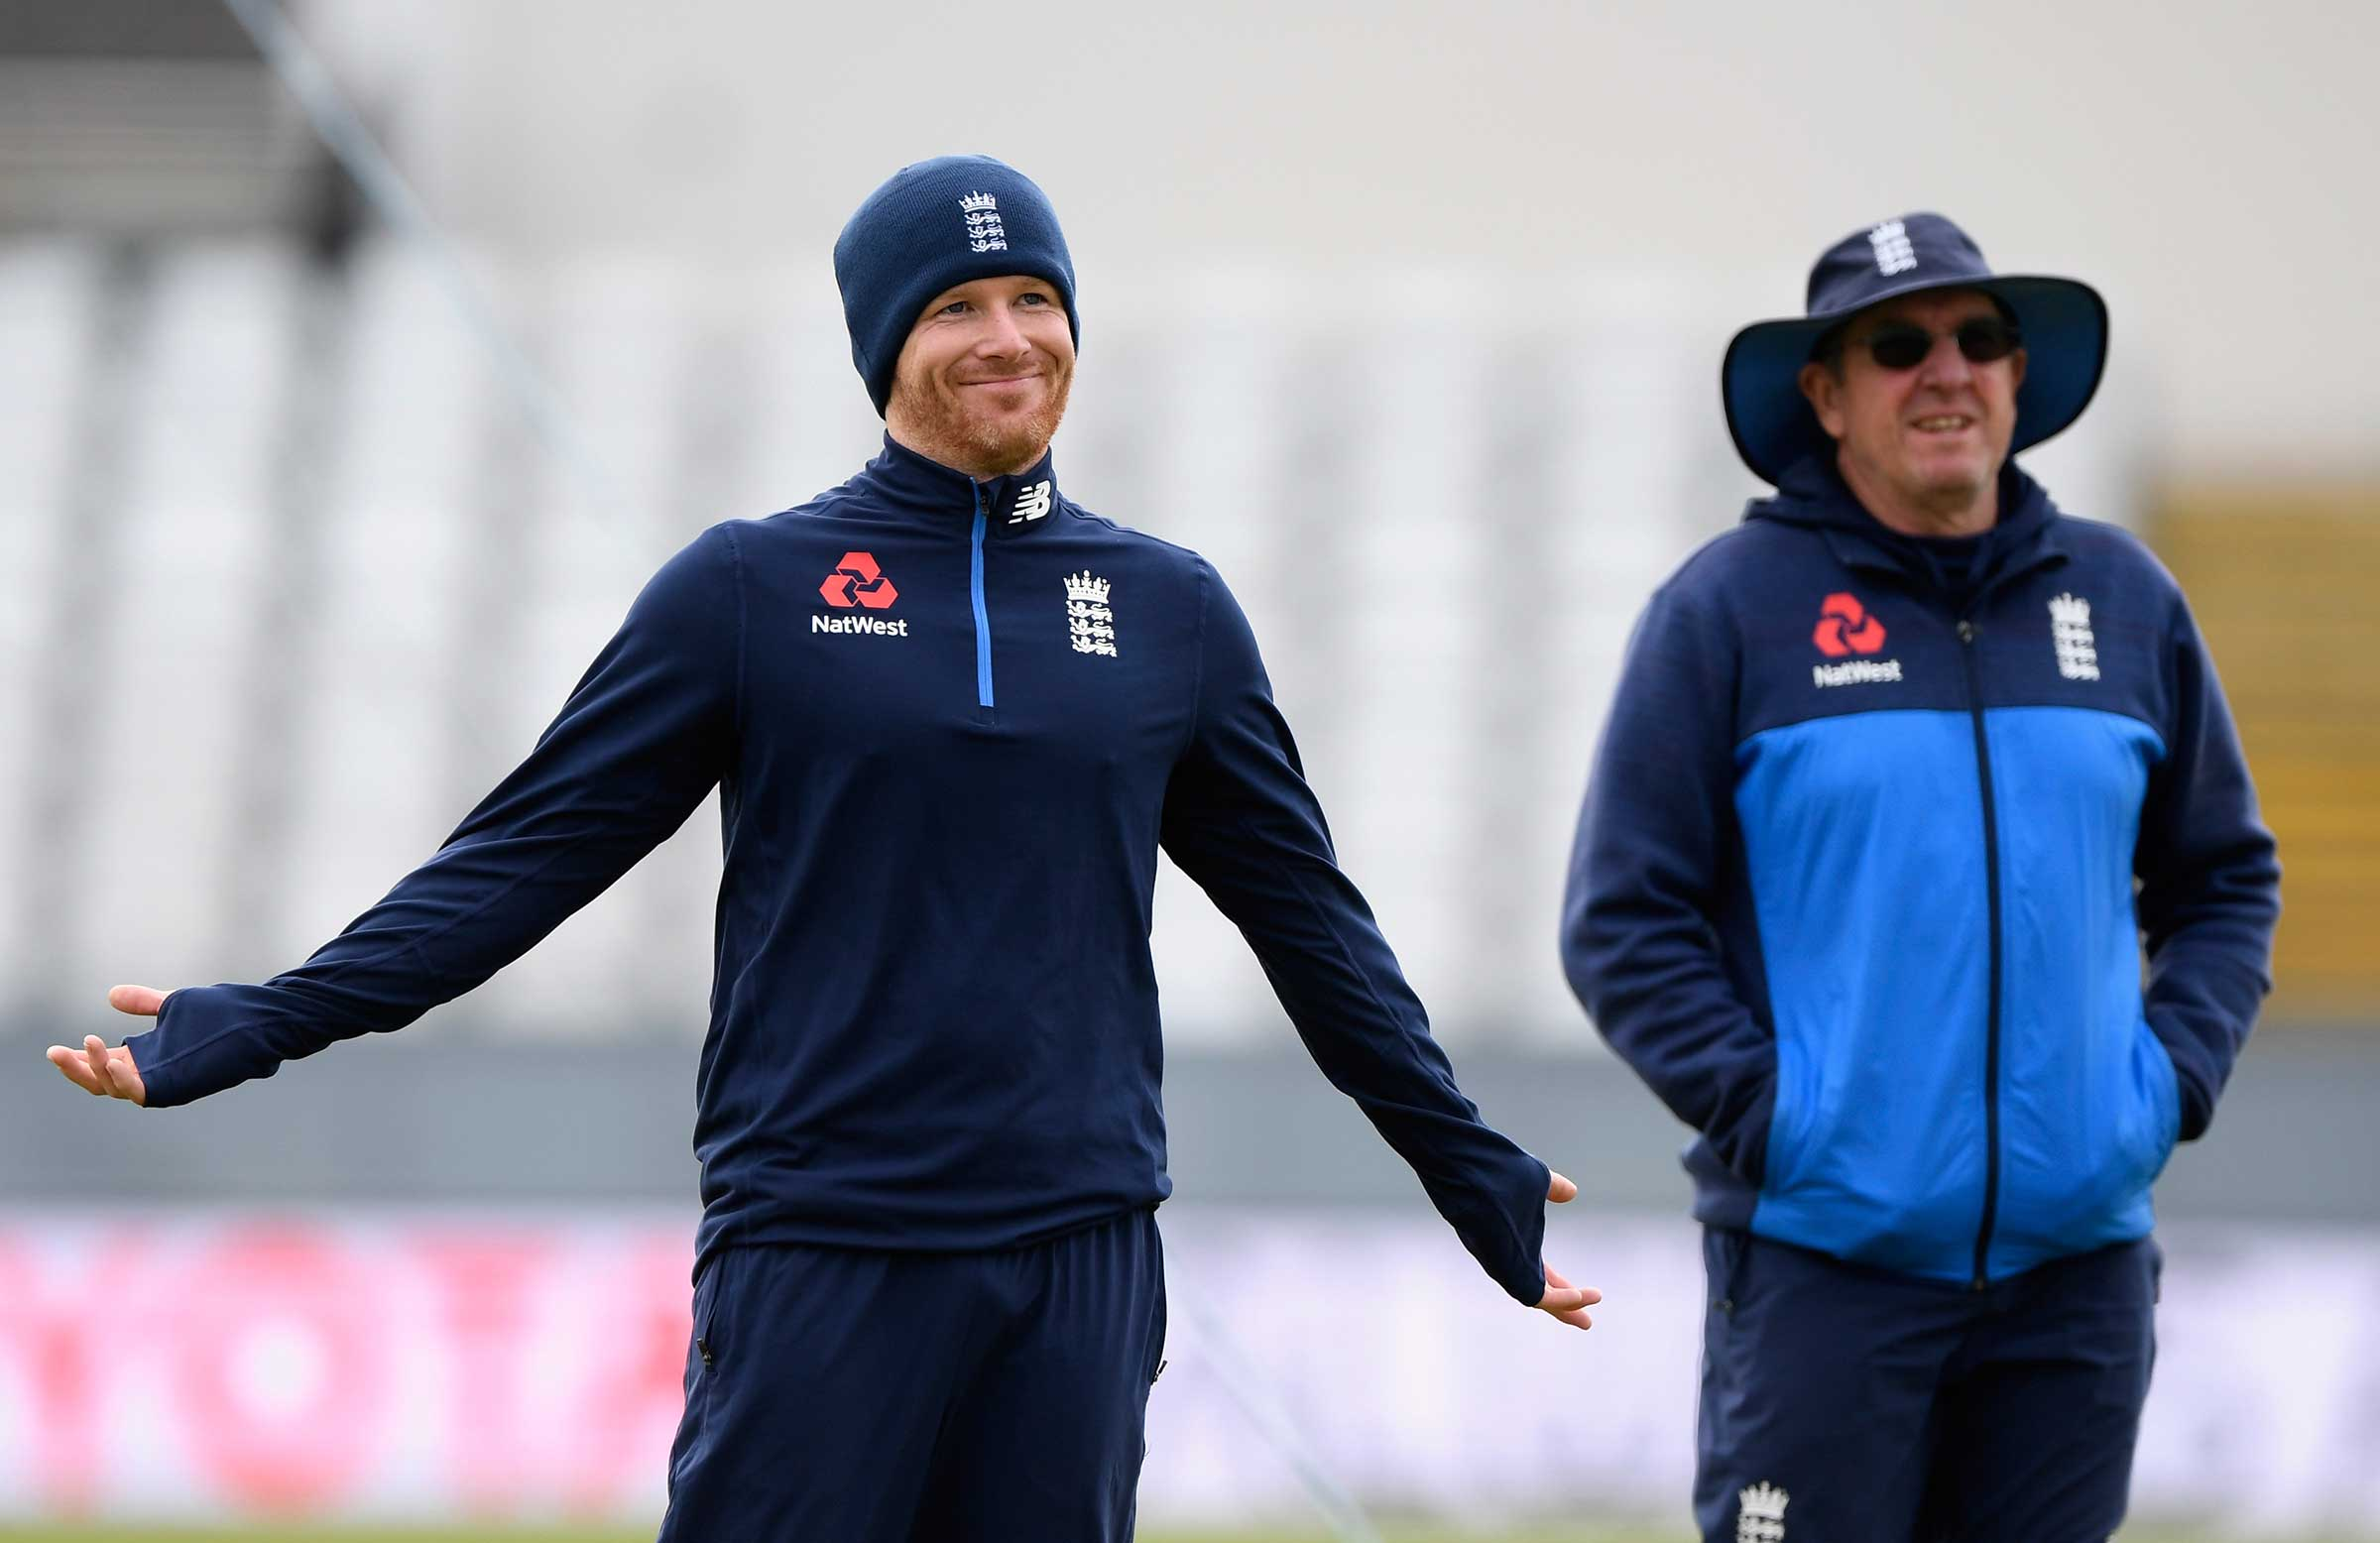 AUS vs ENG 2018: Eoin Morgan praises team after series victory